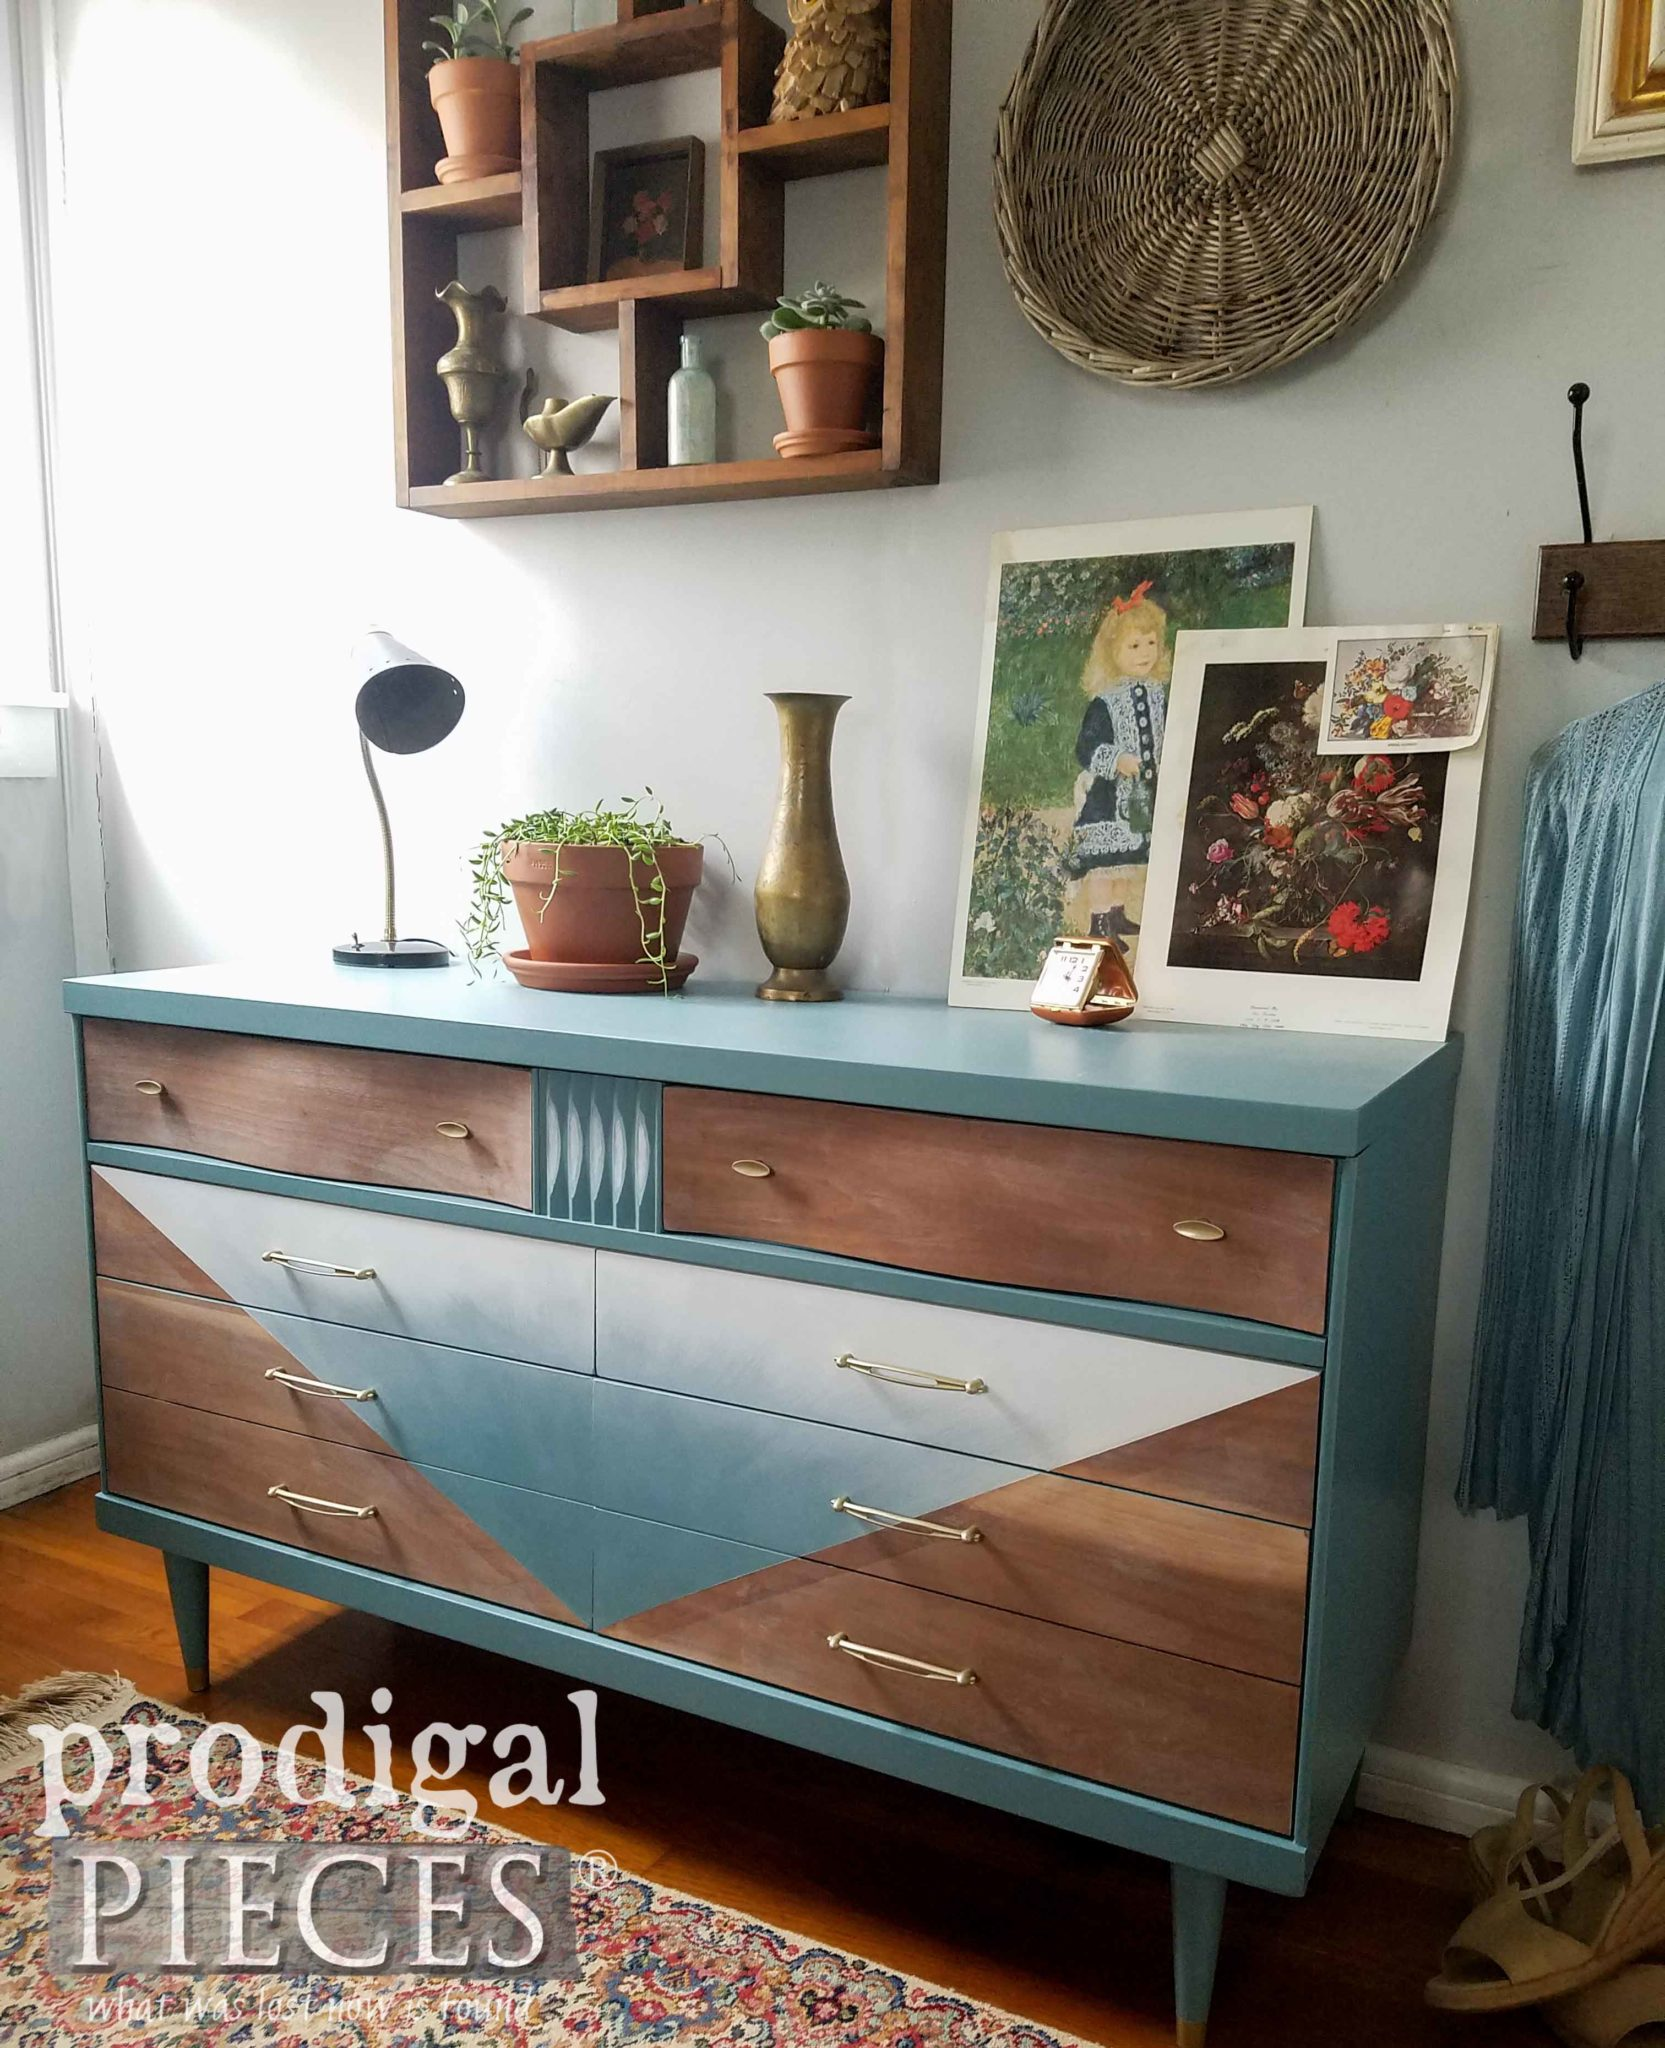 Vintage Bassett Mid Century Modern Dresser with Boho Chic Vibe by Larissa of Prodigal Pieces | prodigalpieces.com